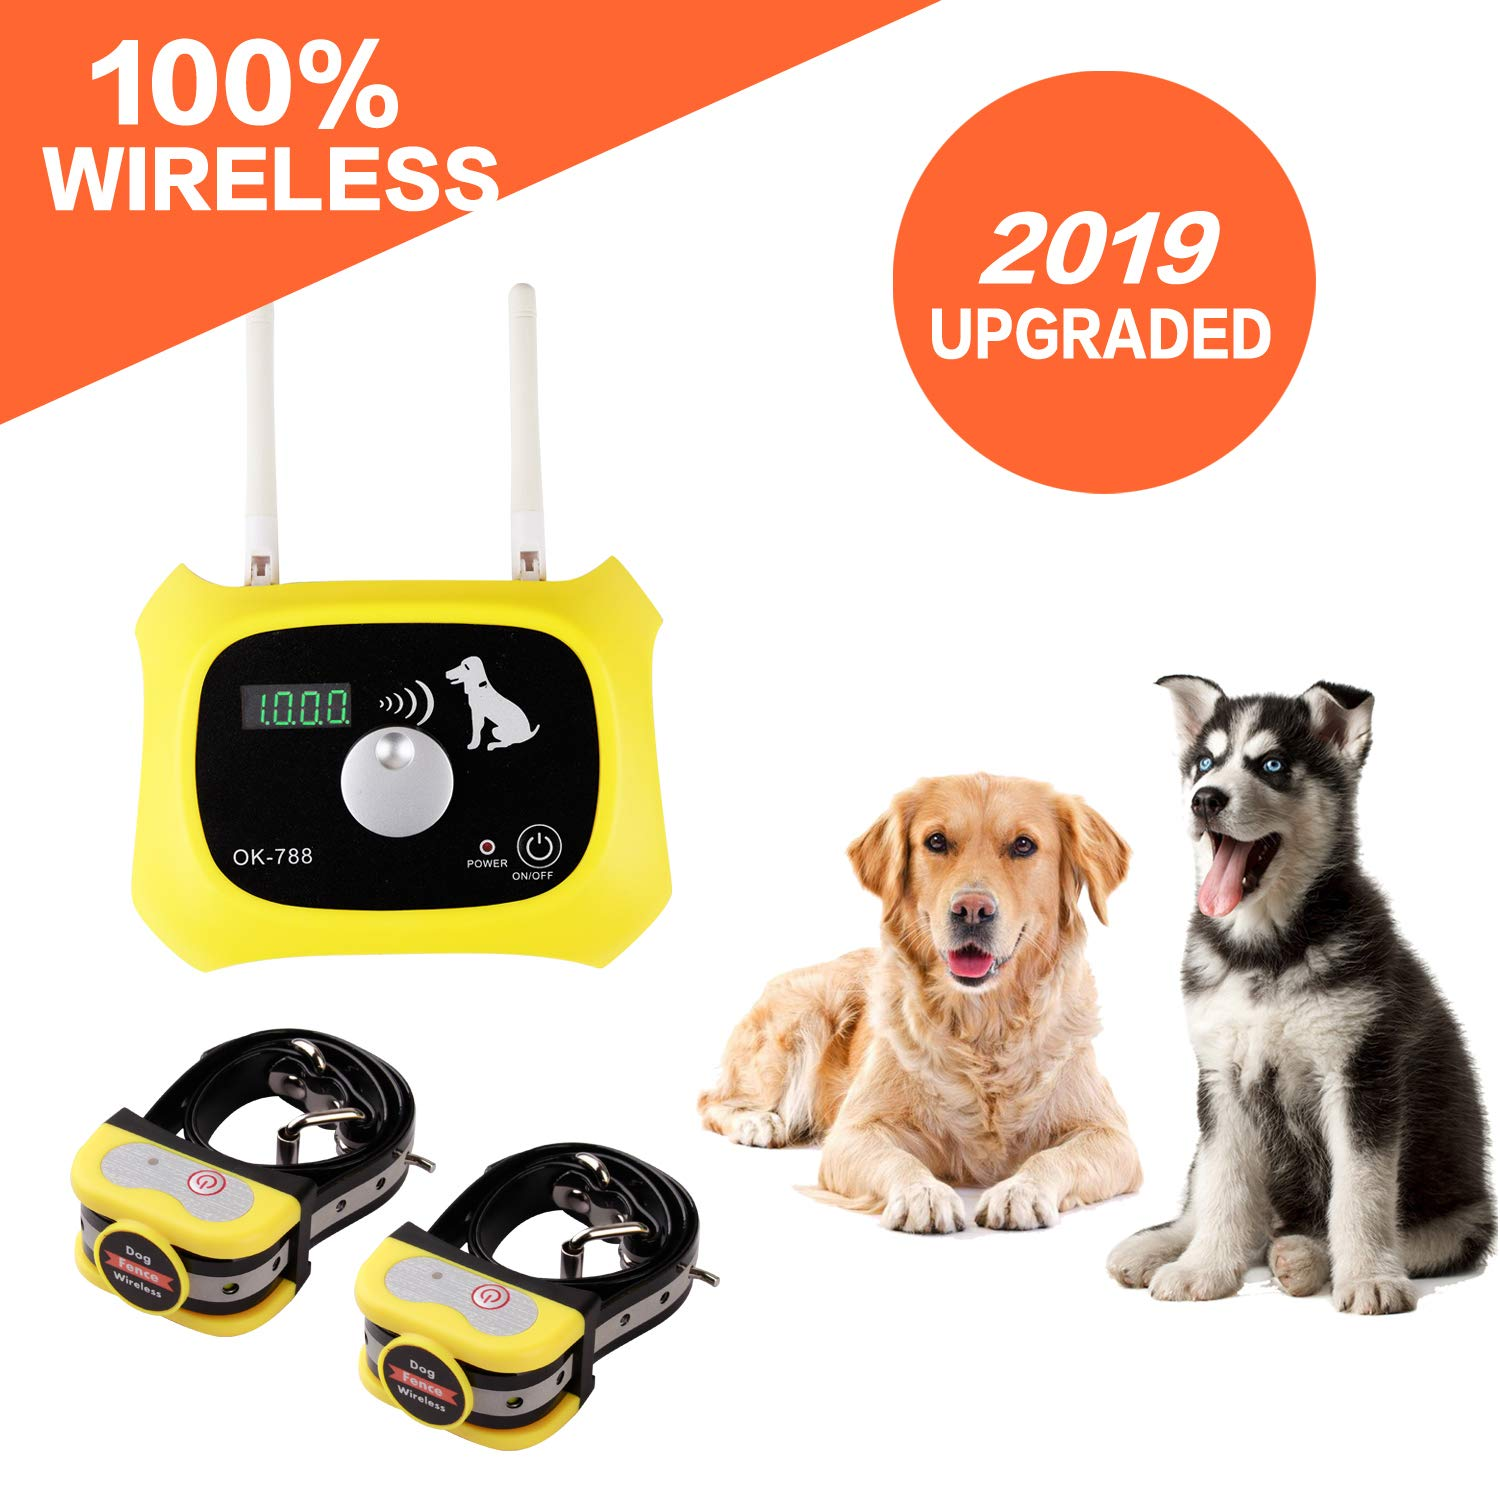 Wireless Dog Fence Electric Pet Containment System, Safe Effective Anti Over Shock Fence, Adjustable Control Range Up to 1000 Feet & Display Distance, Rechargeable Waterproof Collar (2 Dog System) by JUSTSTART